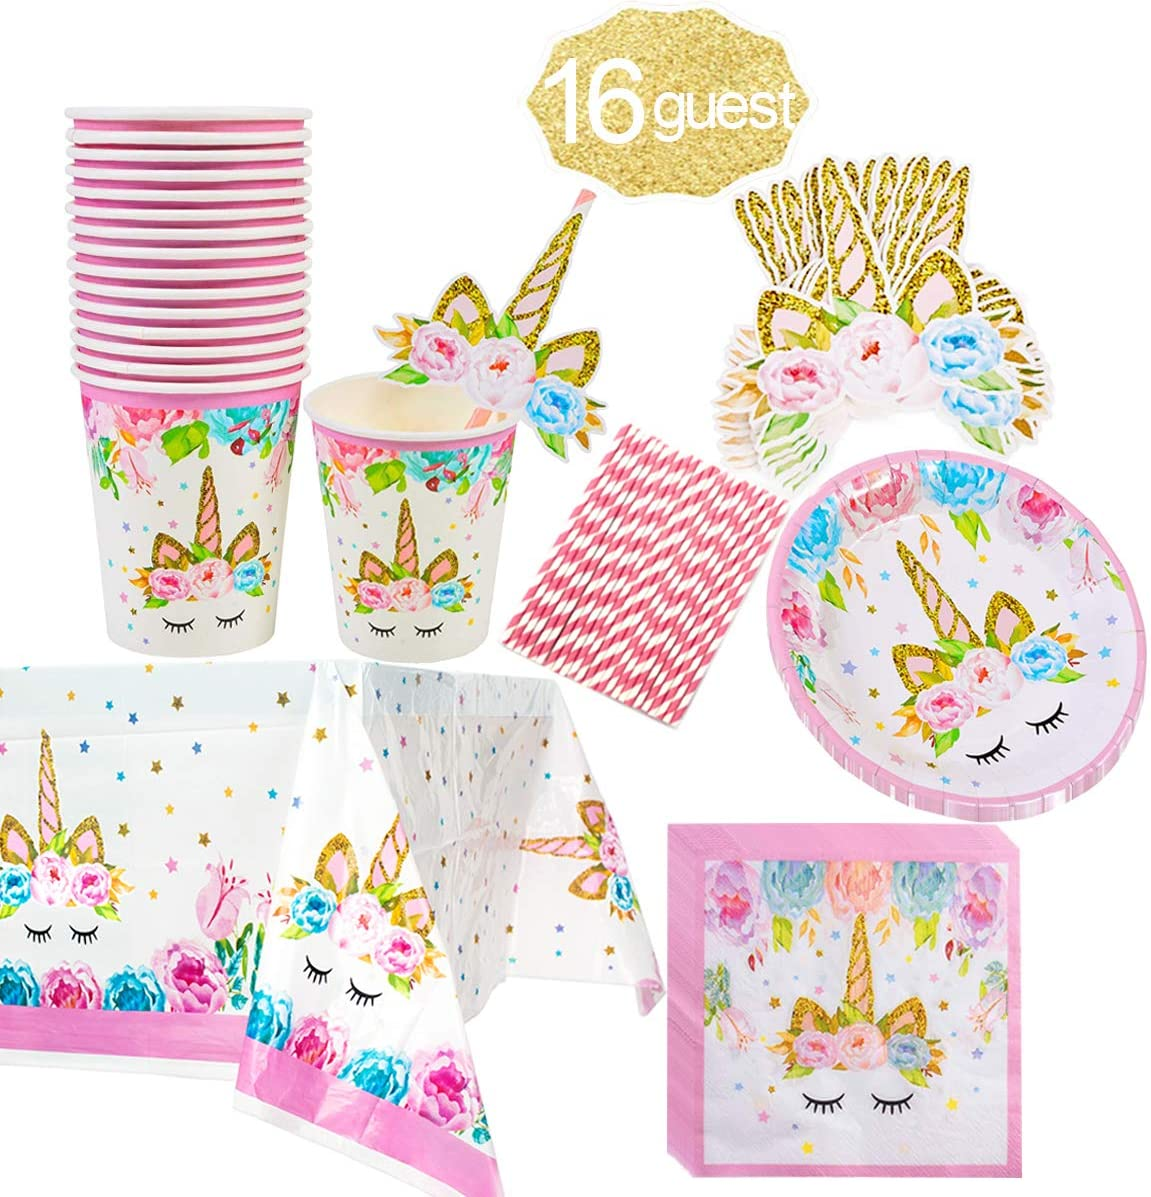 20pcs Unicorn Disposable Paper Drinking Cups Plate Sets Birthday Party Decor